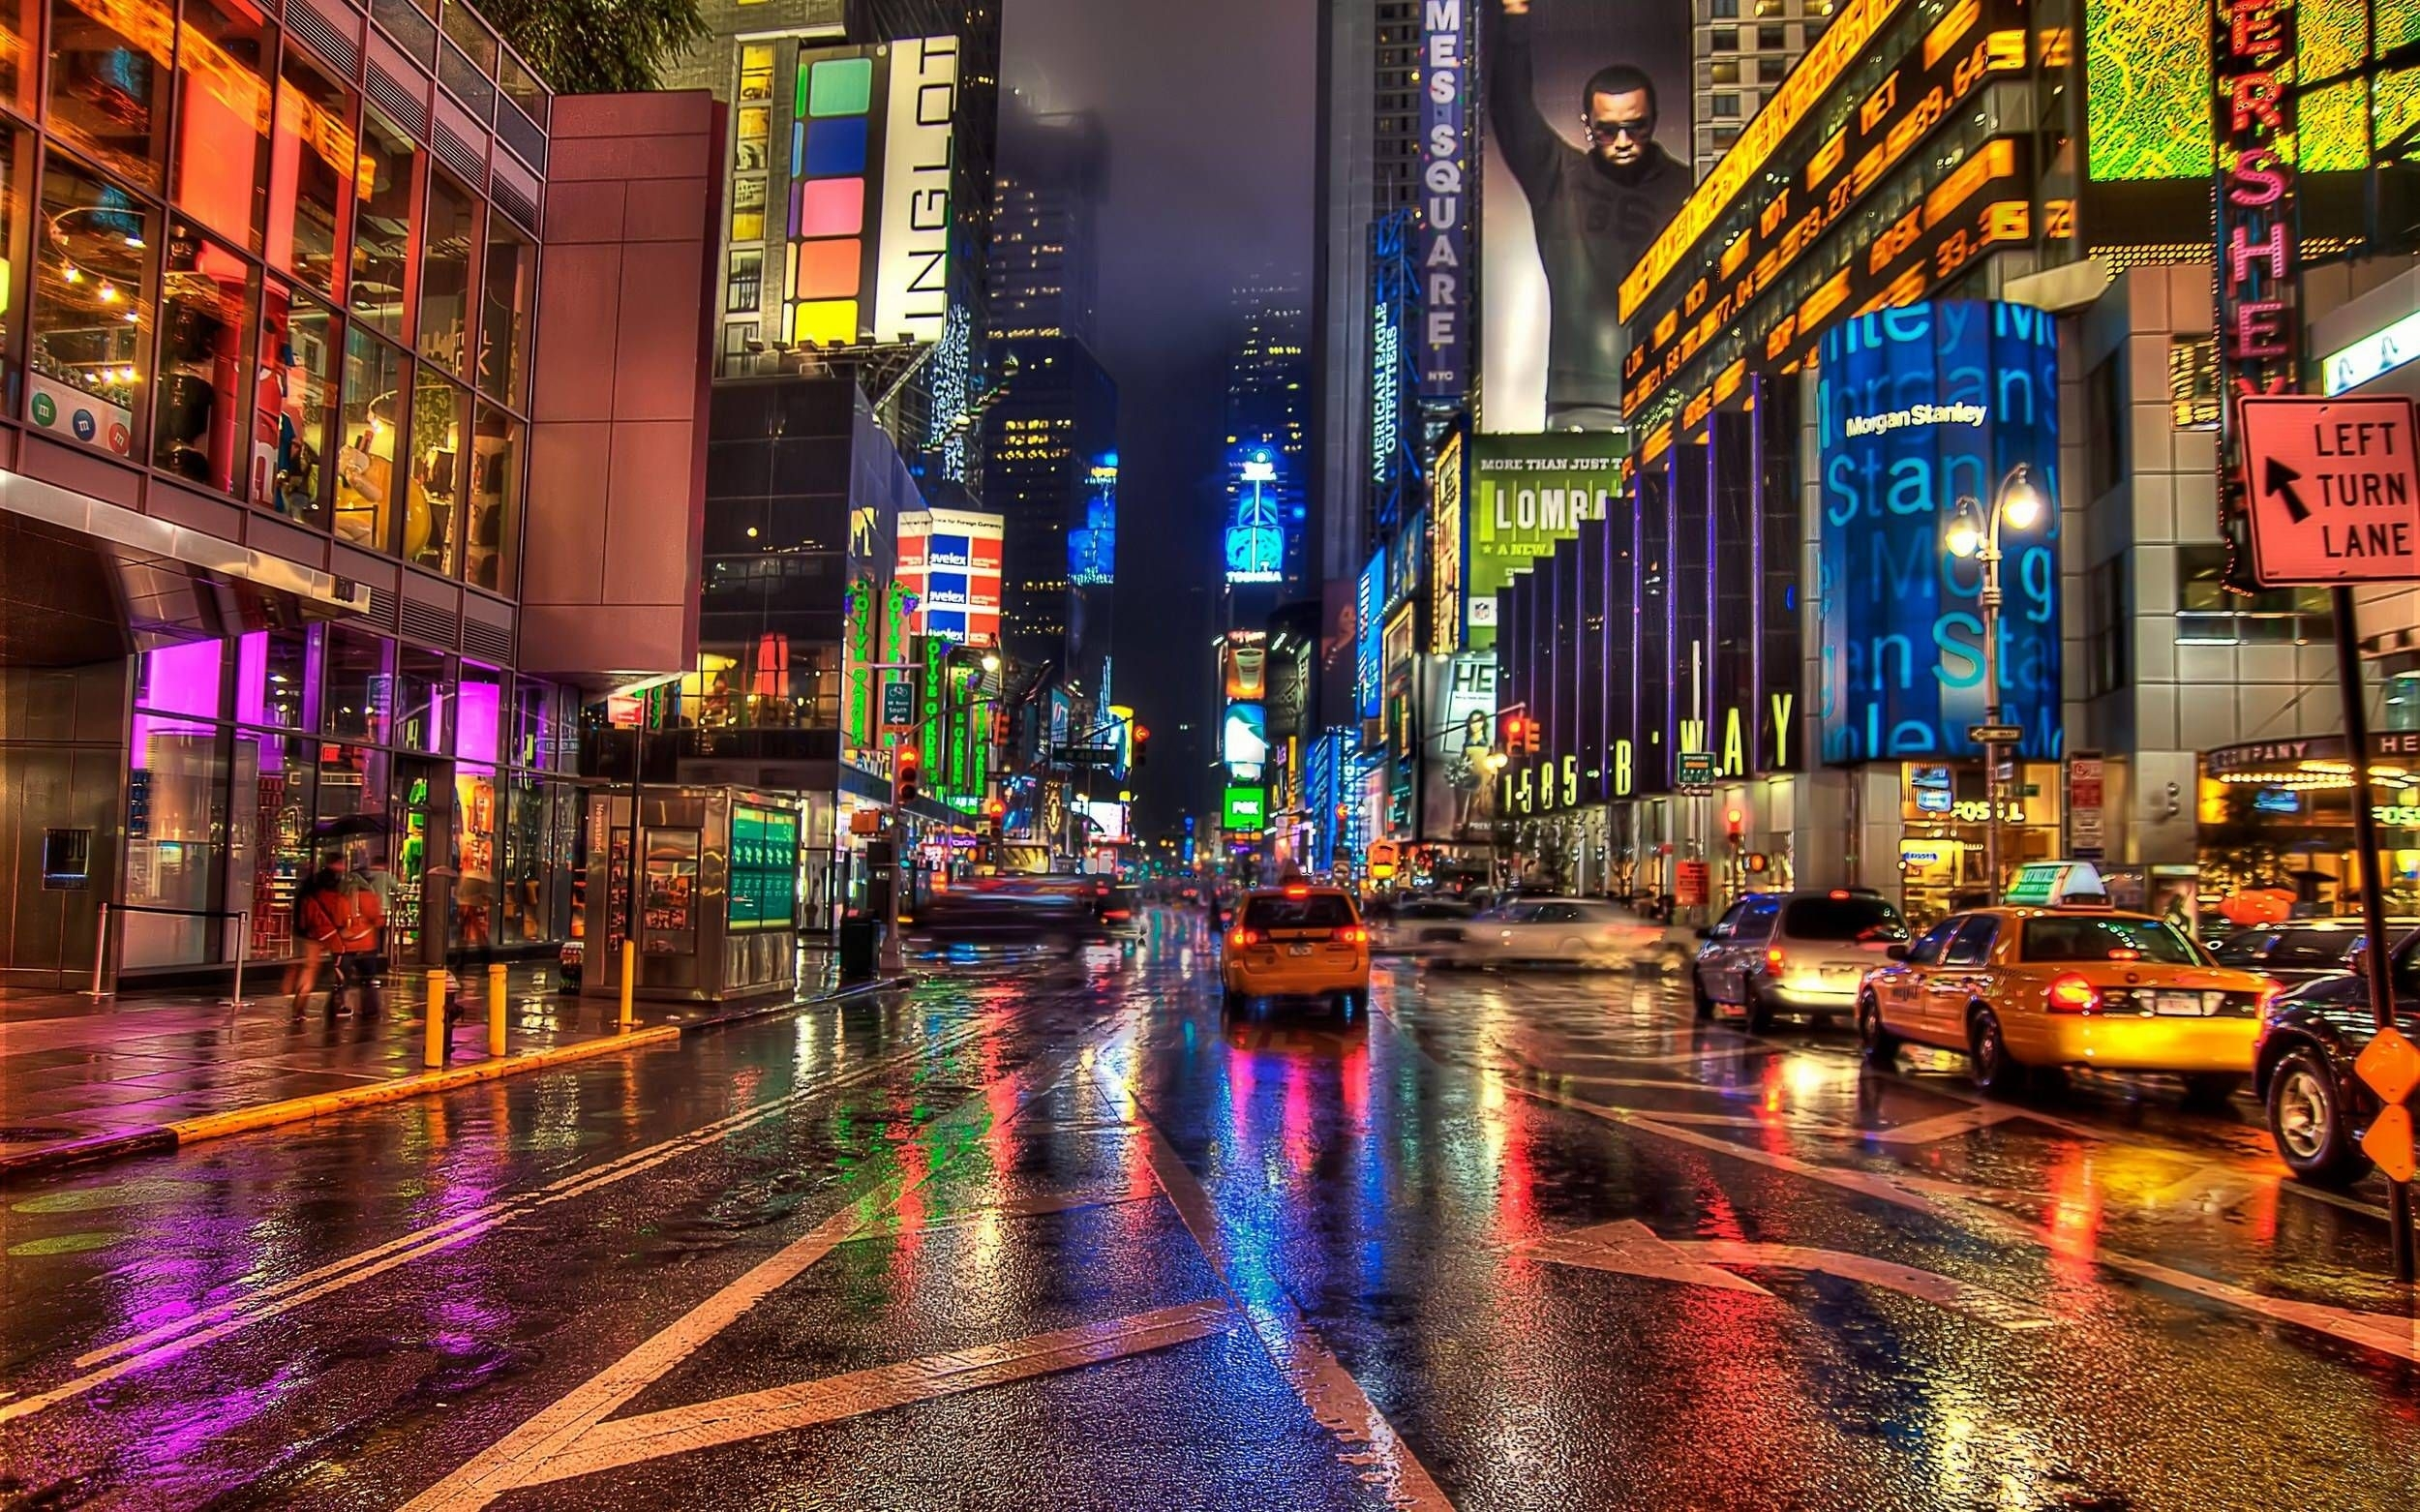 new york city hd images : get free top quality new york city hd